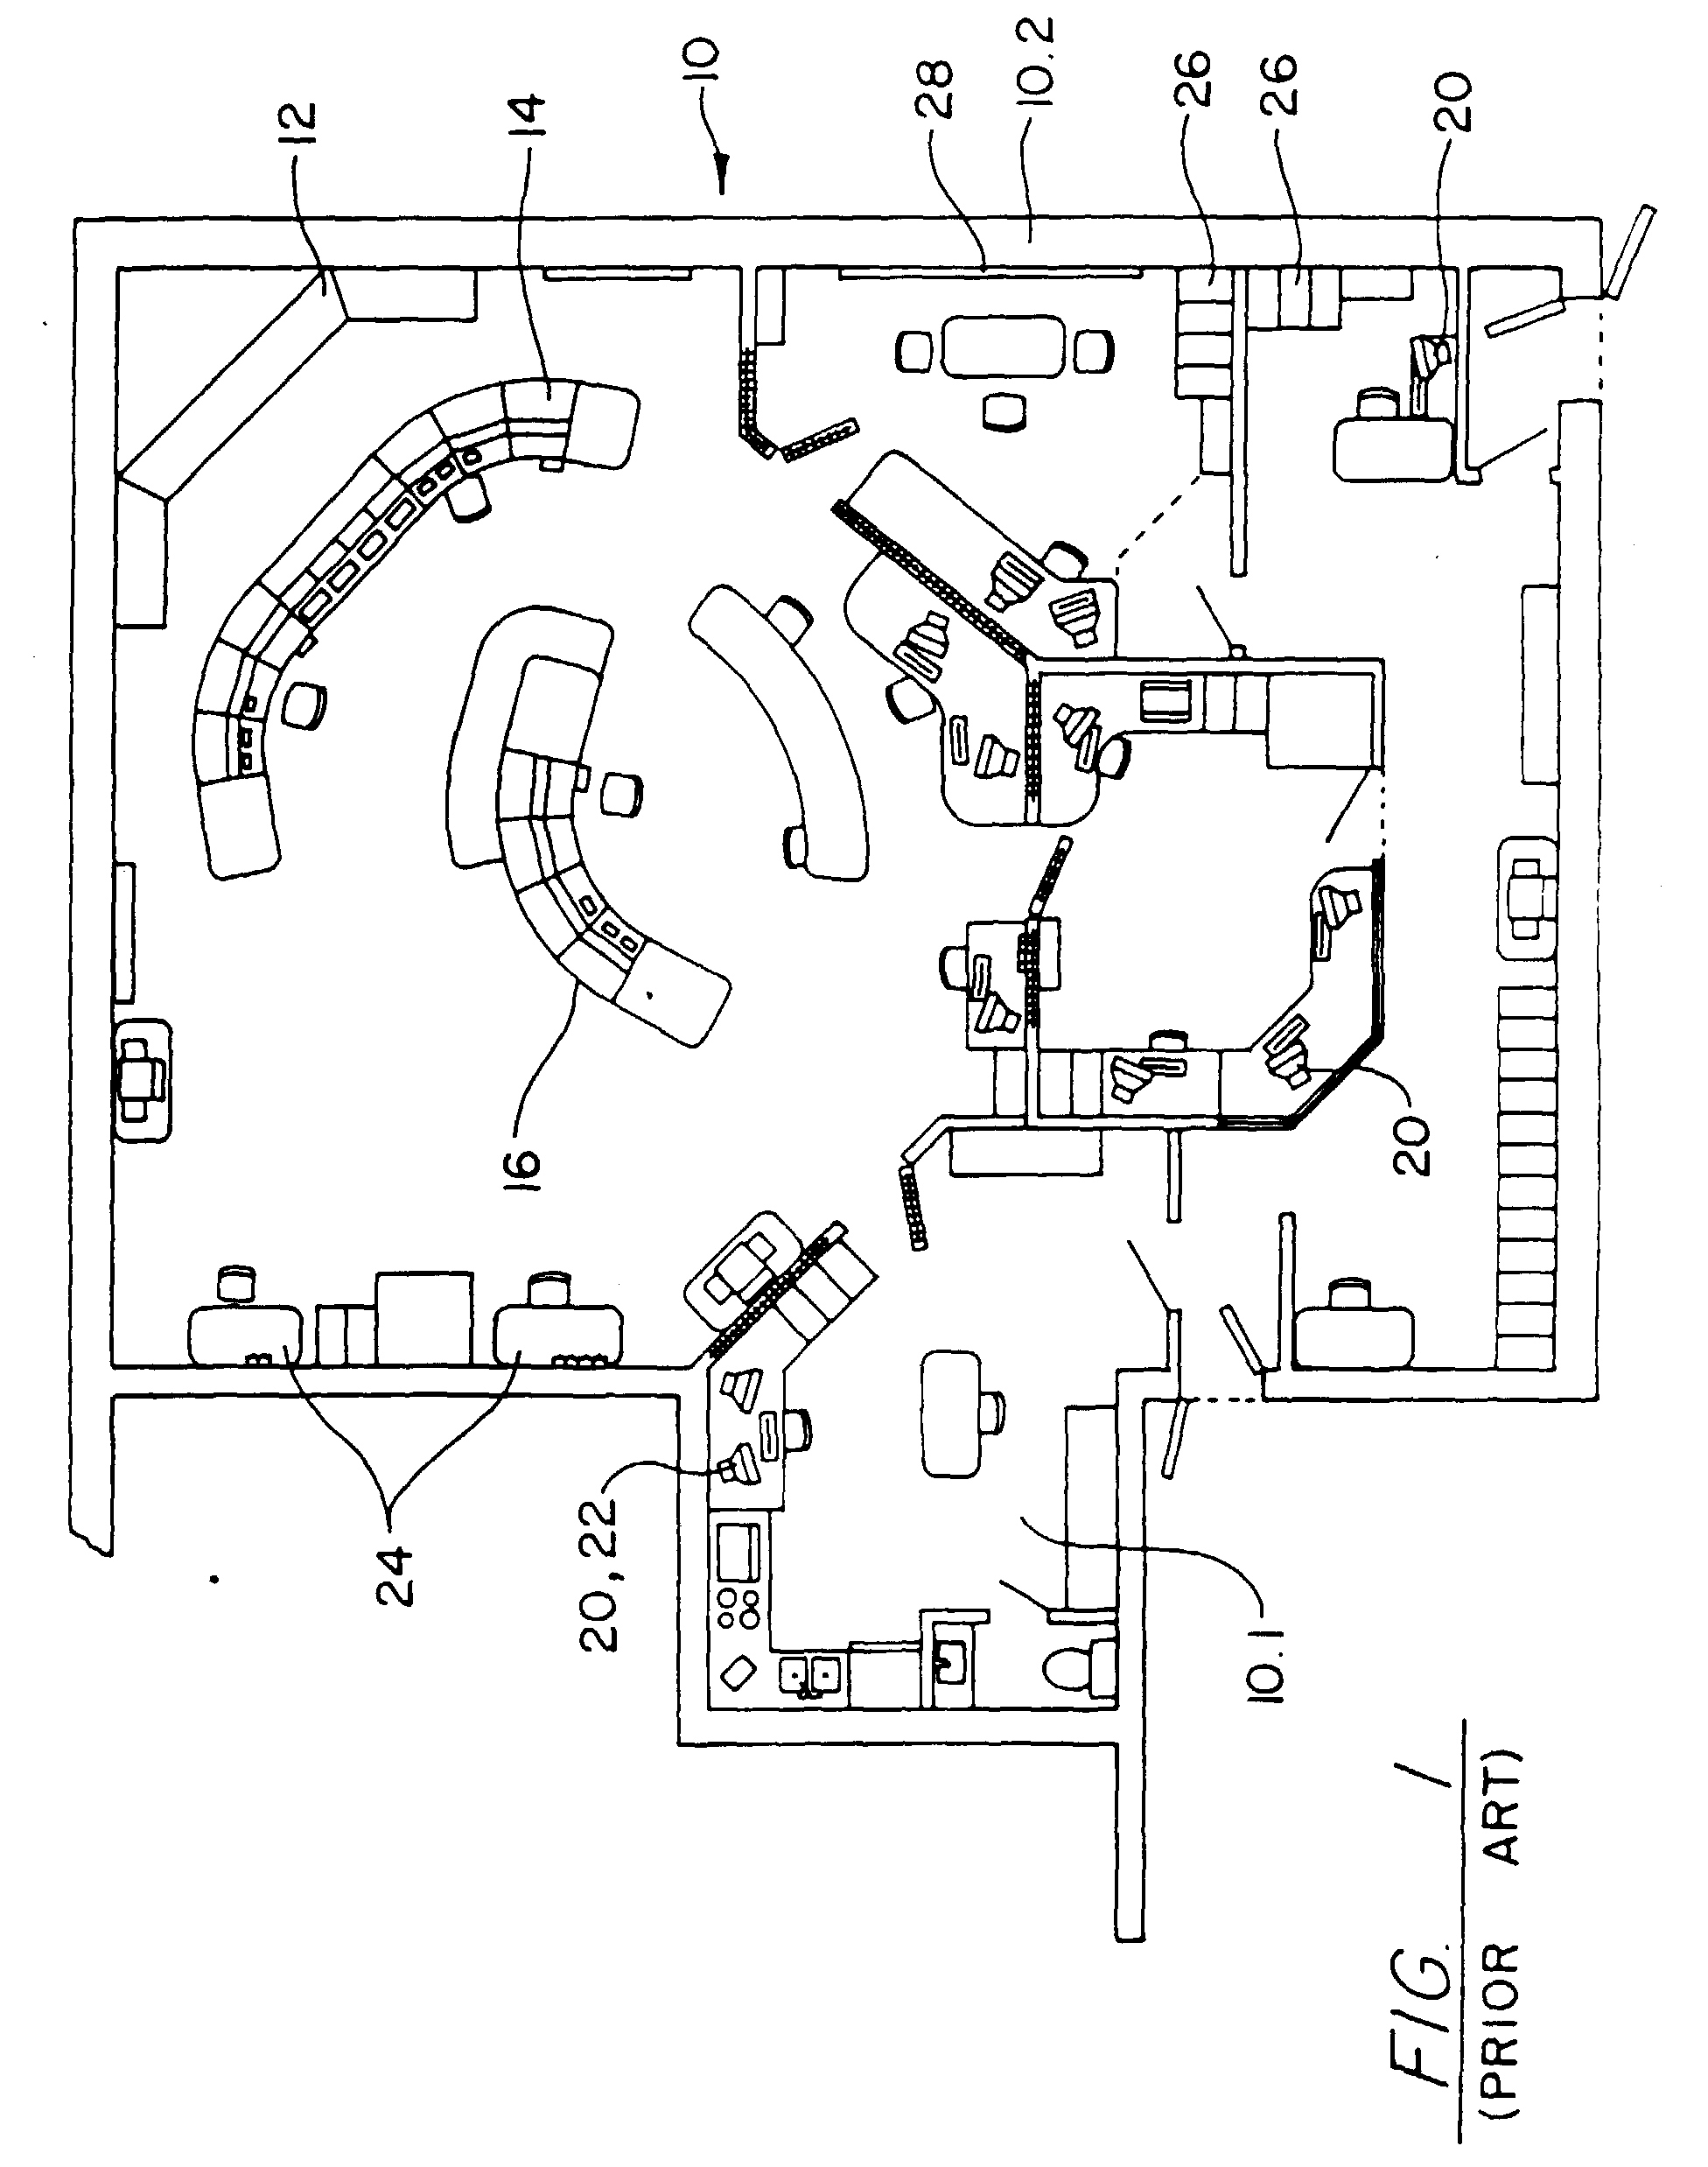 Nuclear Plant Drawing At Free For Personal Use Power Schematic Diagram 1952x2476 Room Dwg Unique Patent Ep B1 Reactor Control